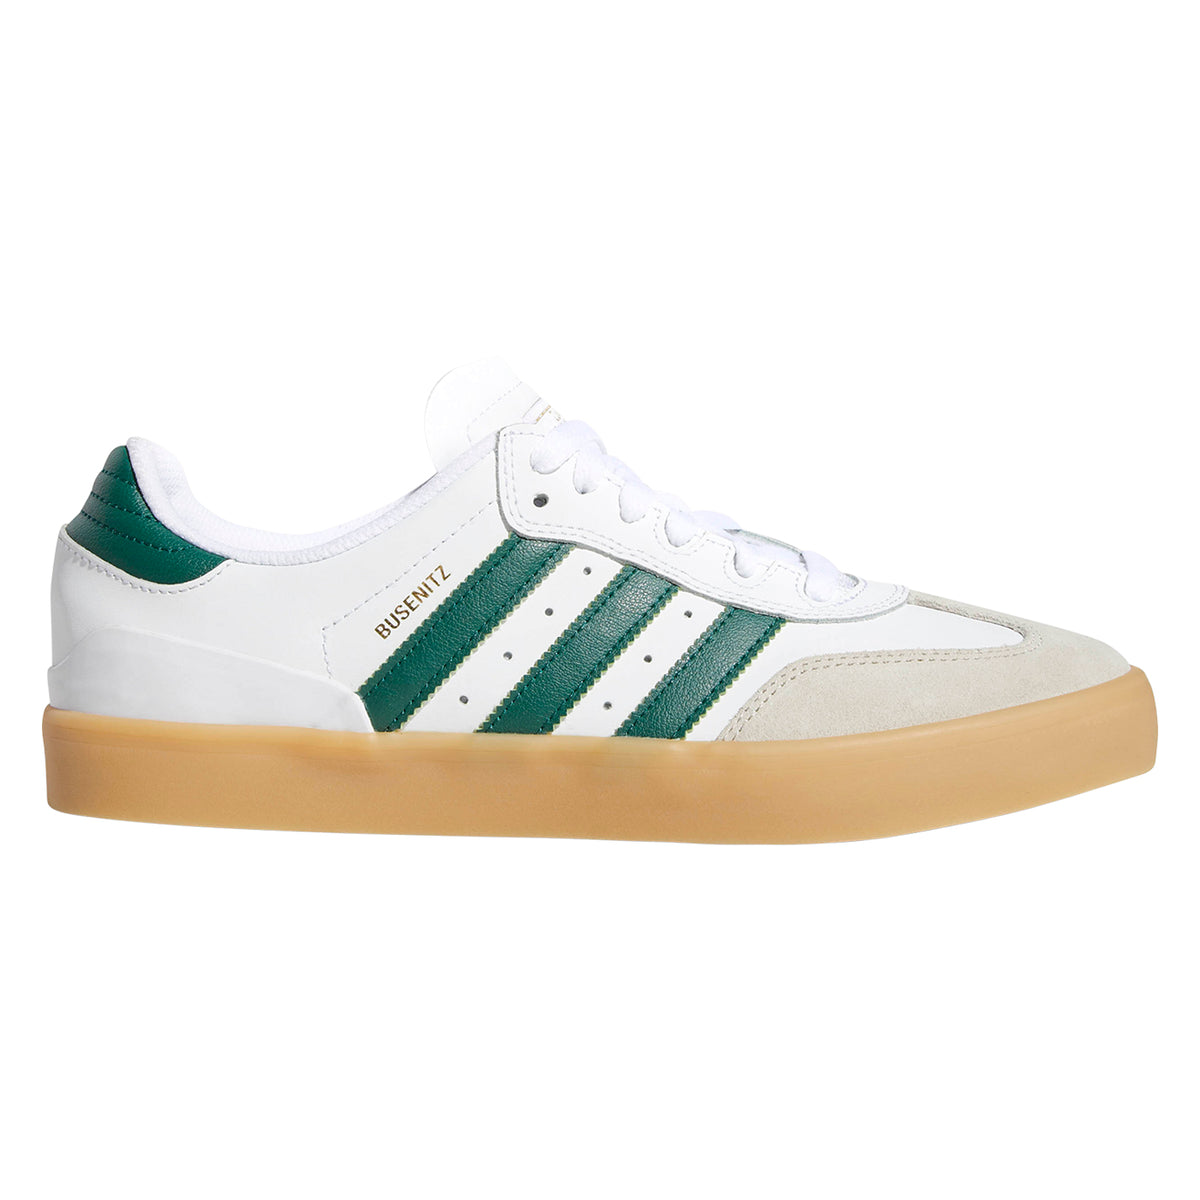 3464e781b Busenitz Vulc RX Shoes in Footwear White   Collegiate Green   Gum by Adidas